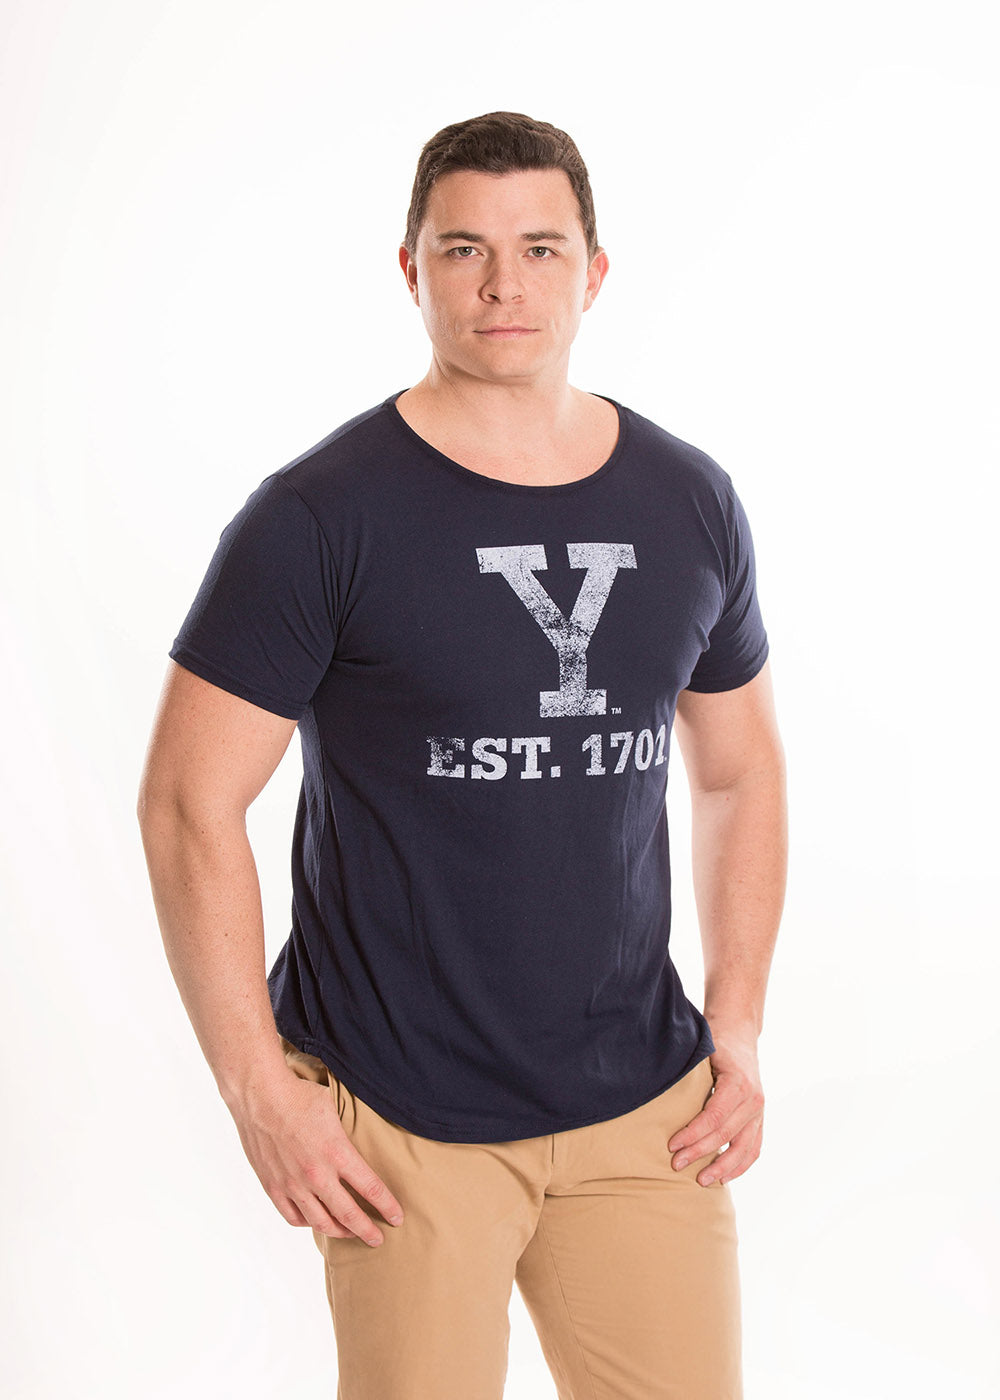 YALE UNIVERSITY Bulldogs Men's Recycled Tee